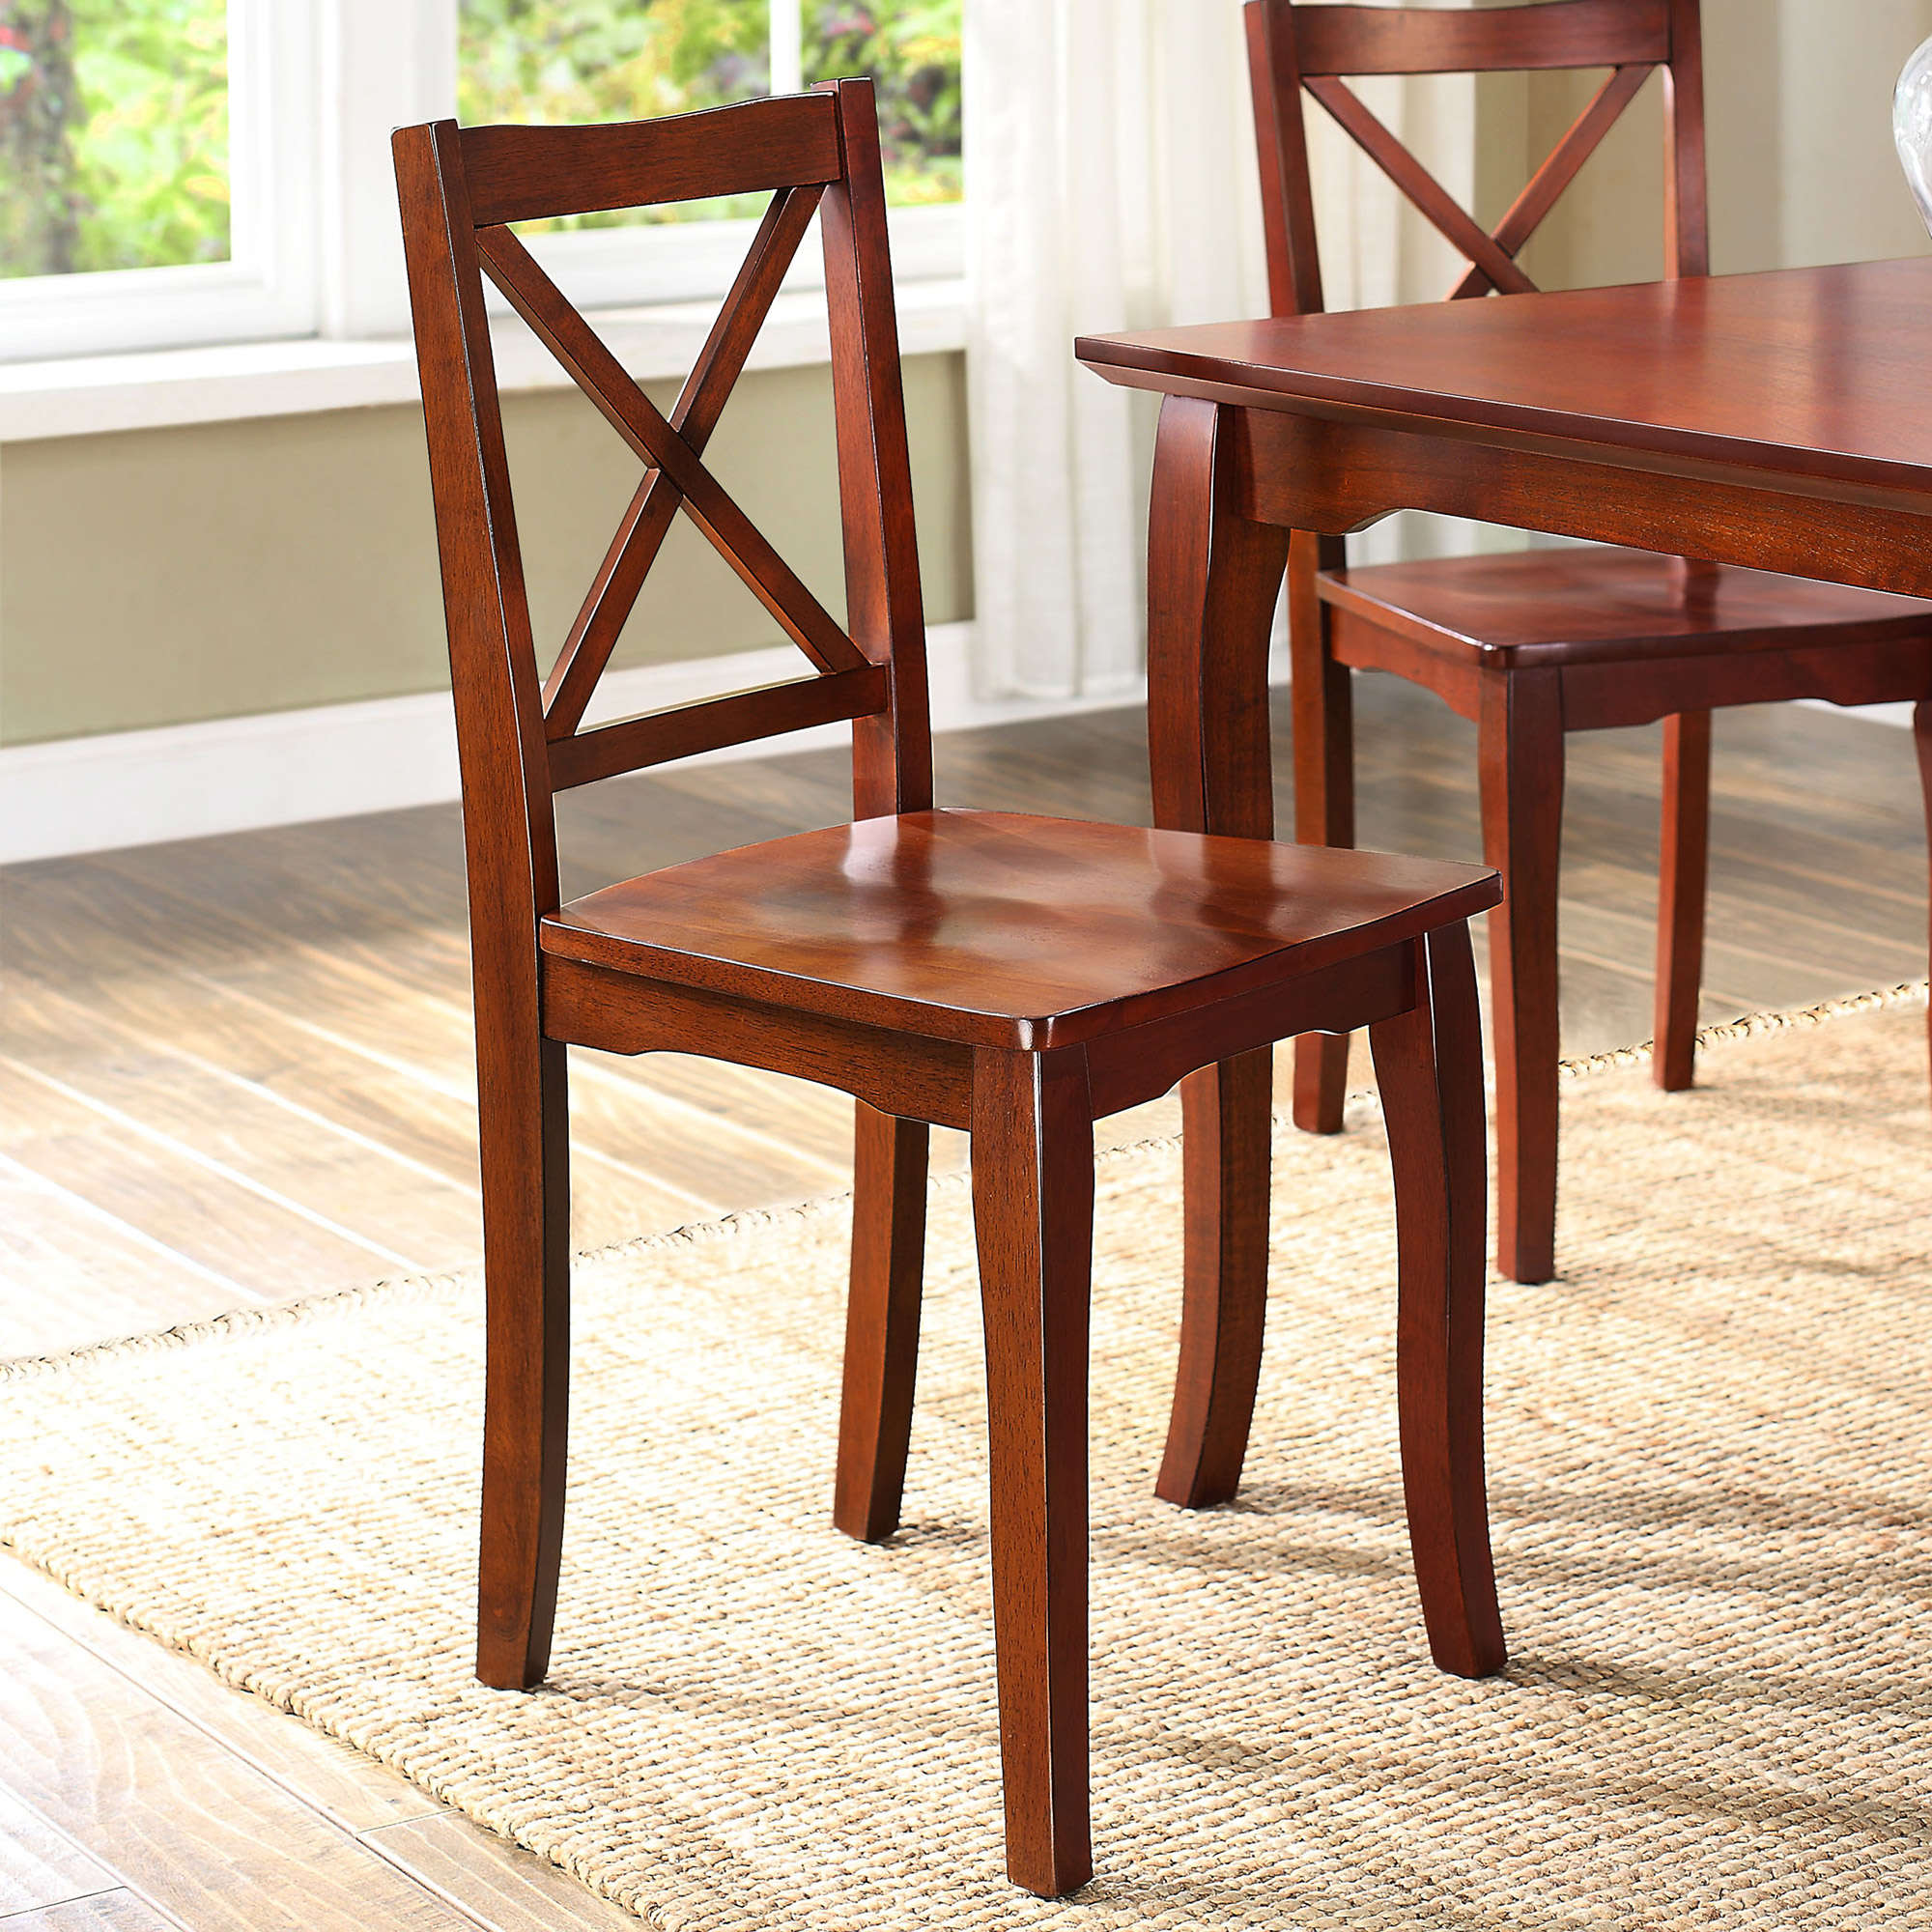 Inspirational Better Homes and Gardens Ashwood Road Wood Dining Chair Set of